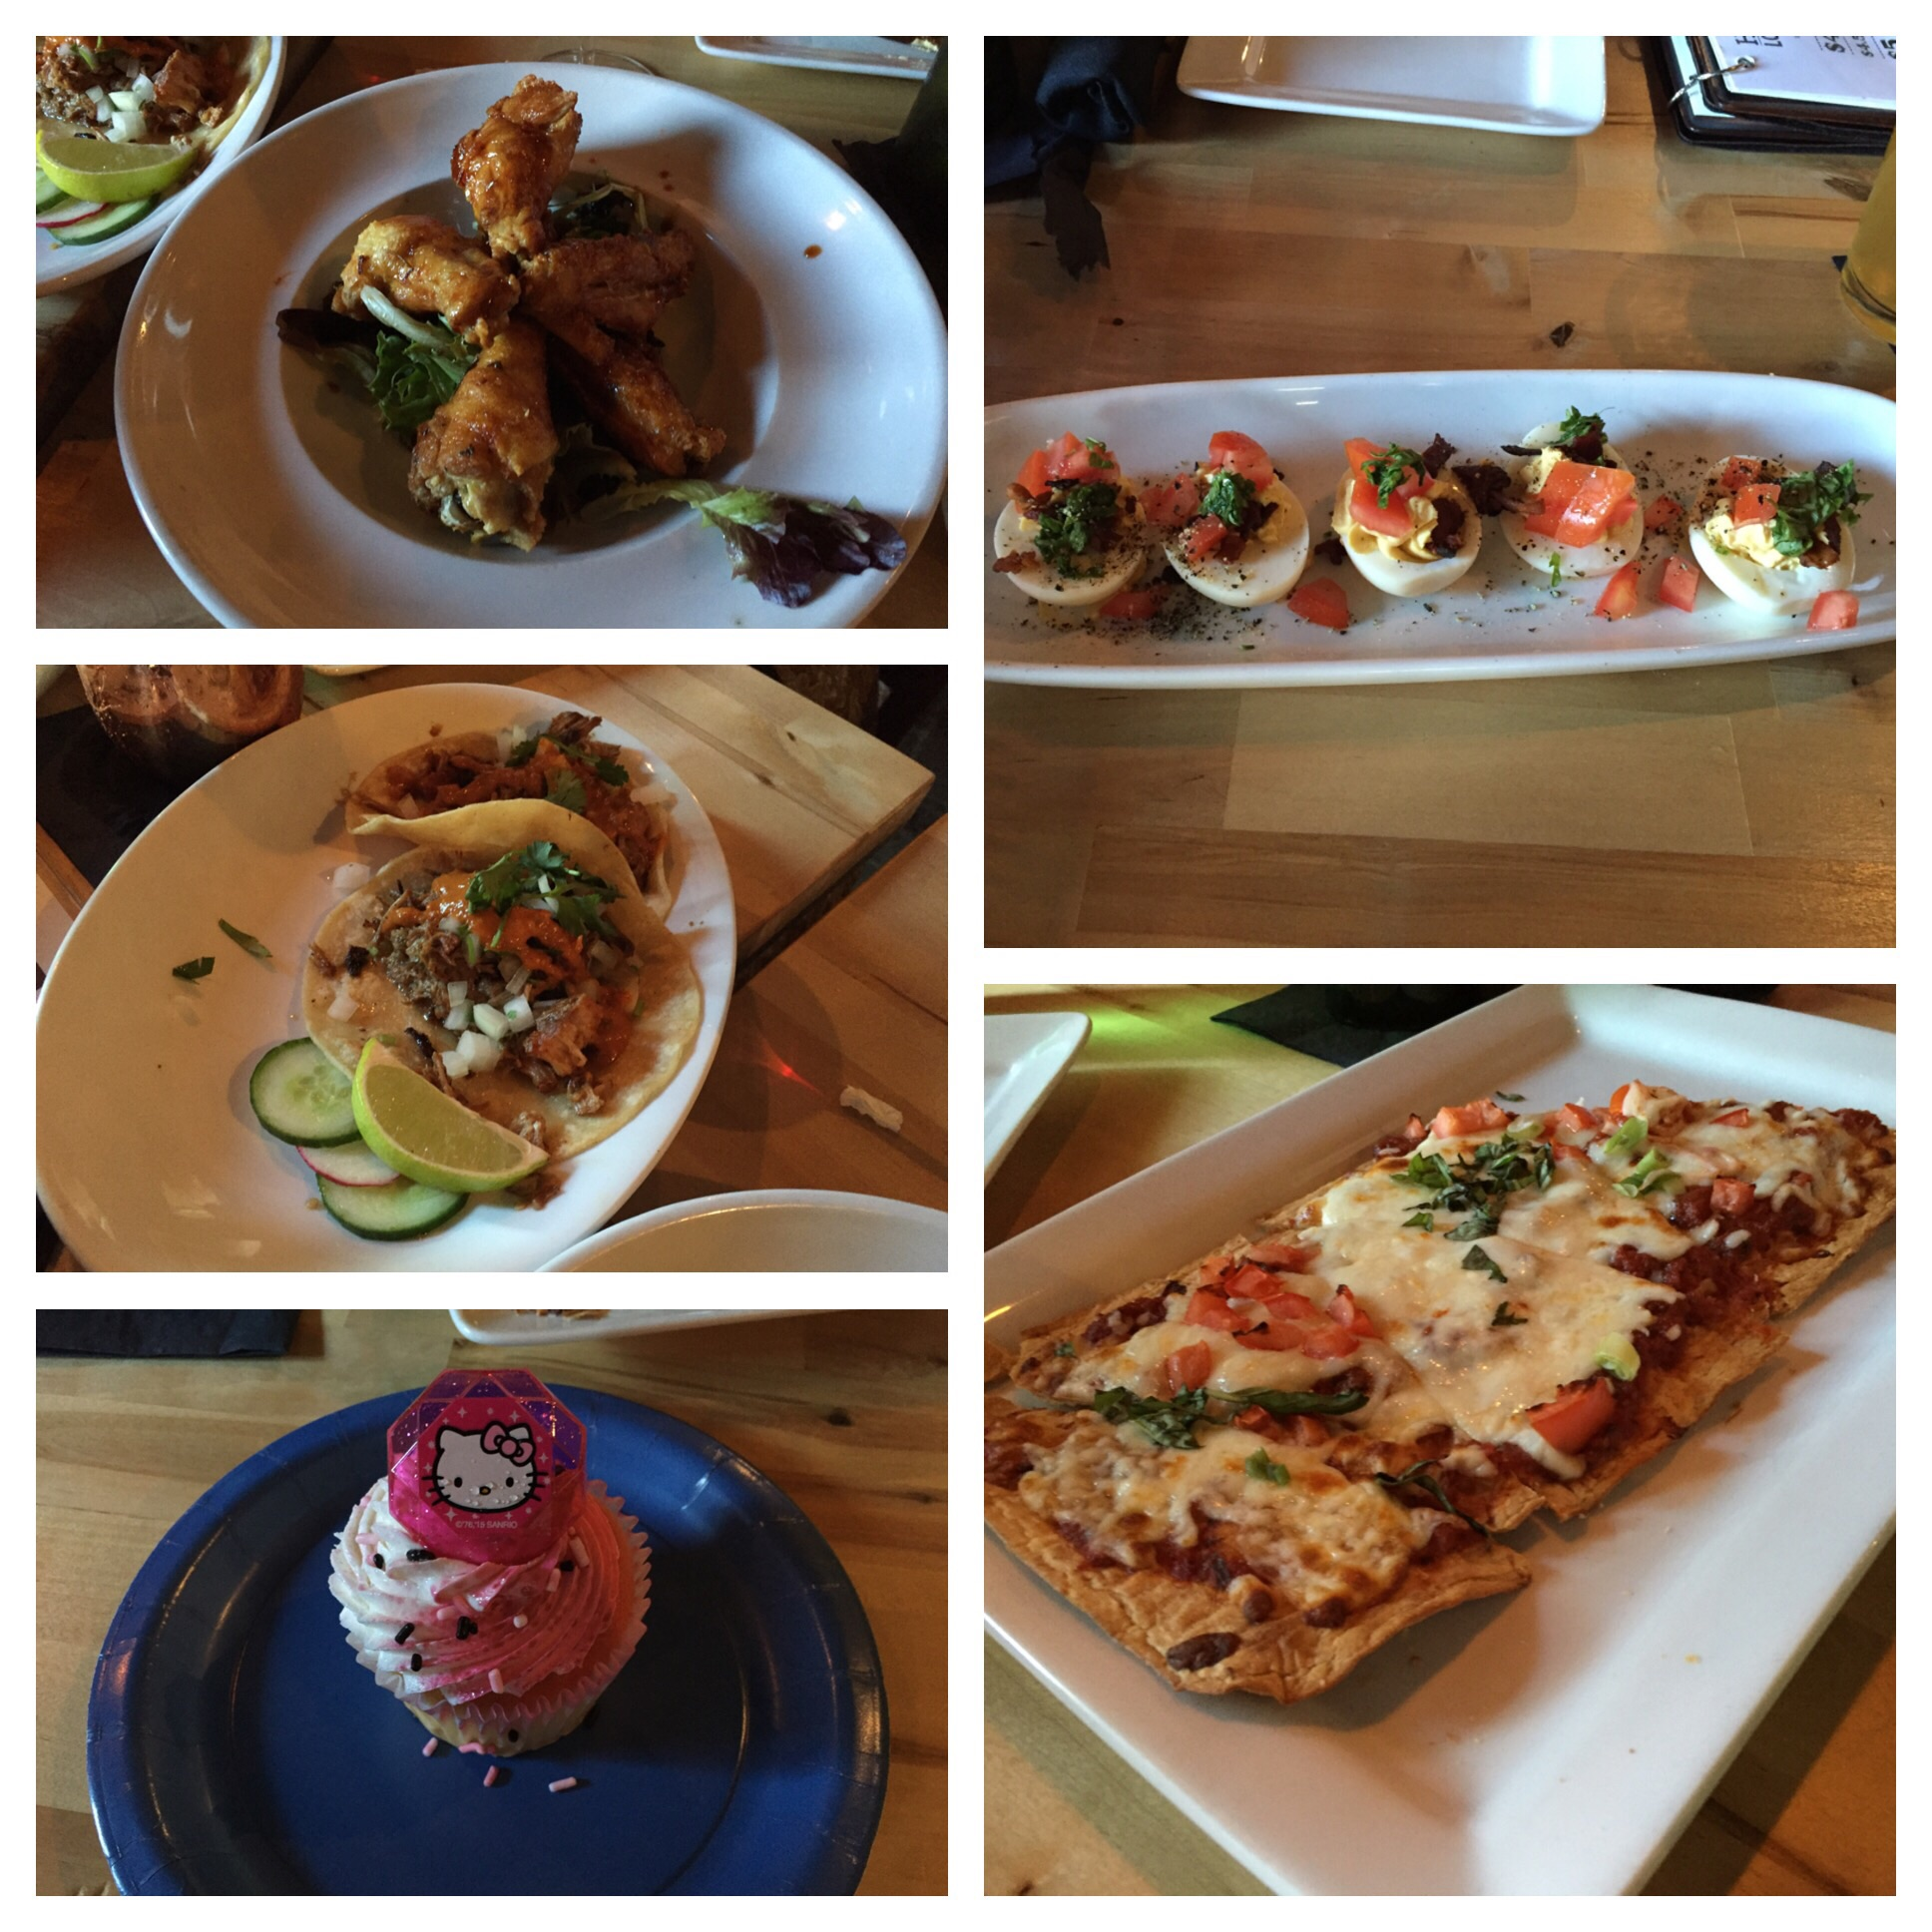 Wings, deviled eggs, margarita flatbread, birthday cupcakes and tacos! All excellent!